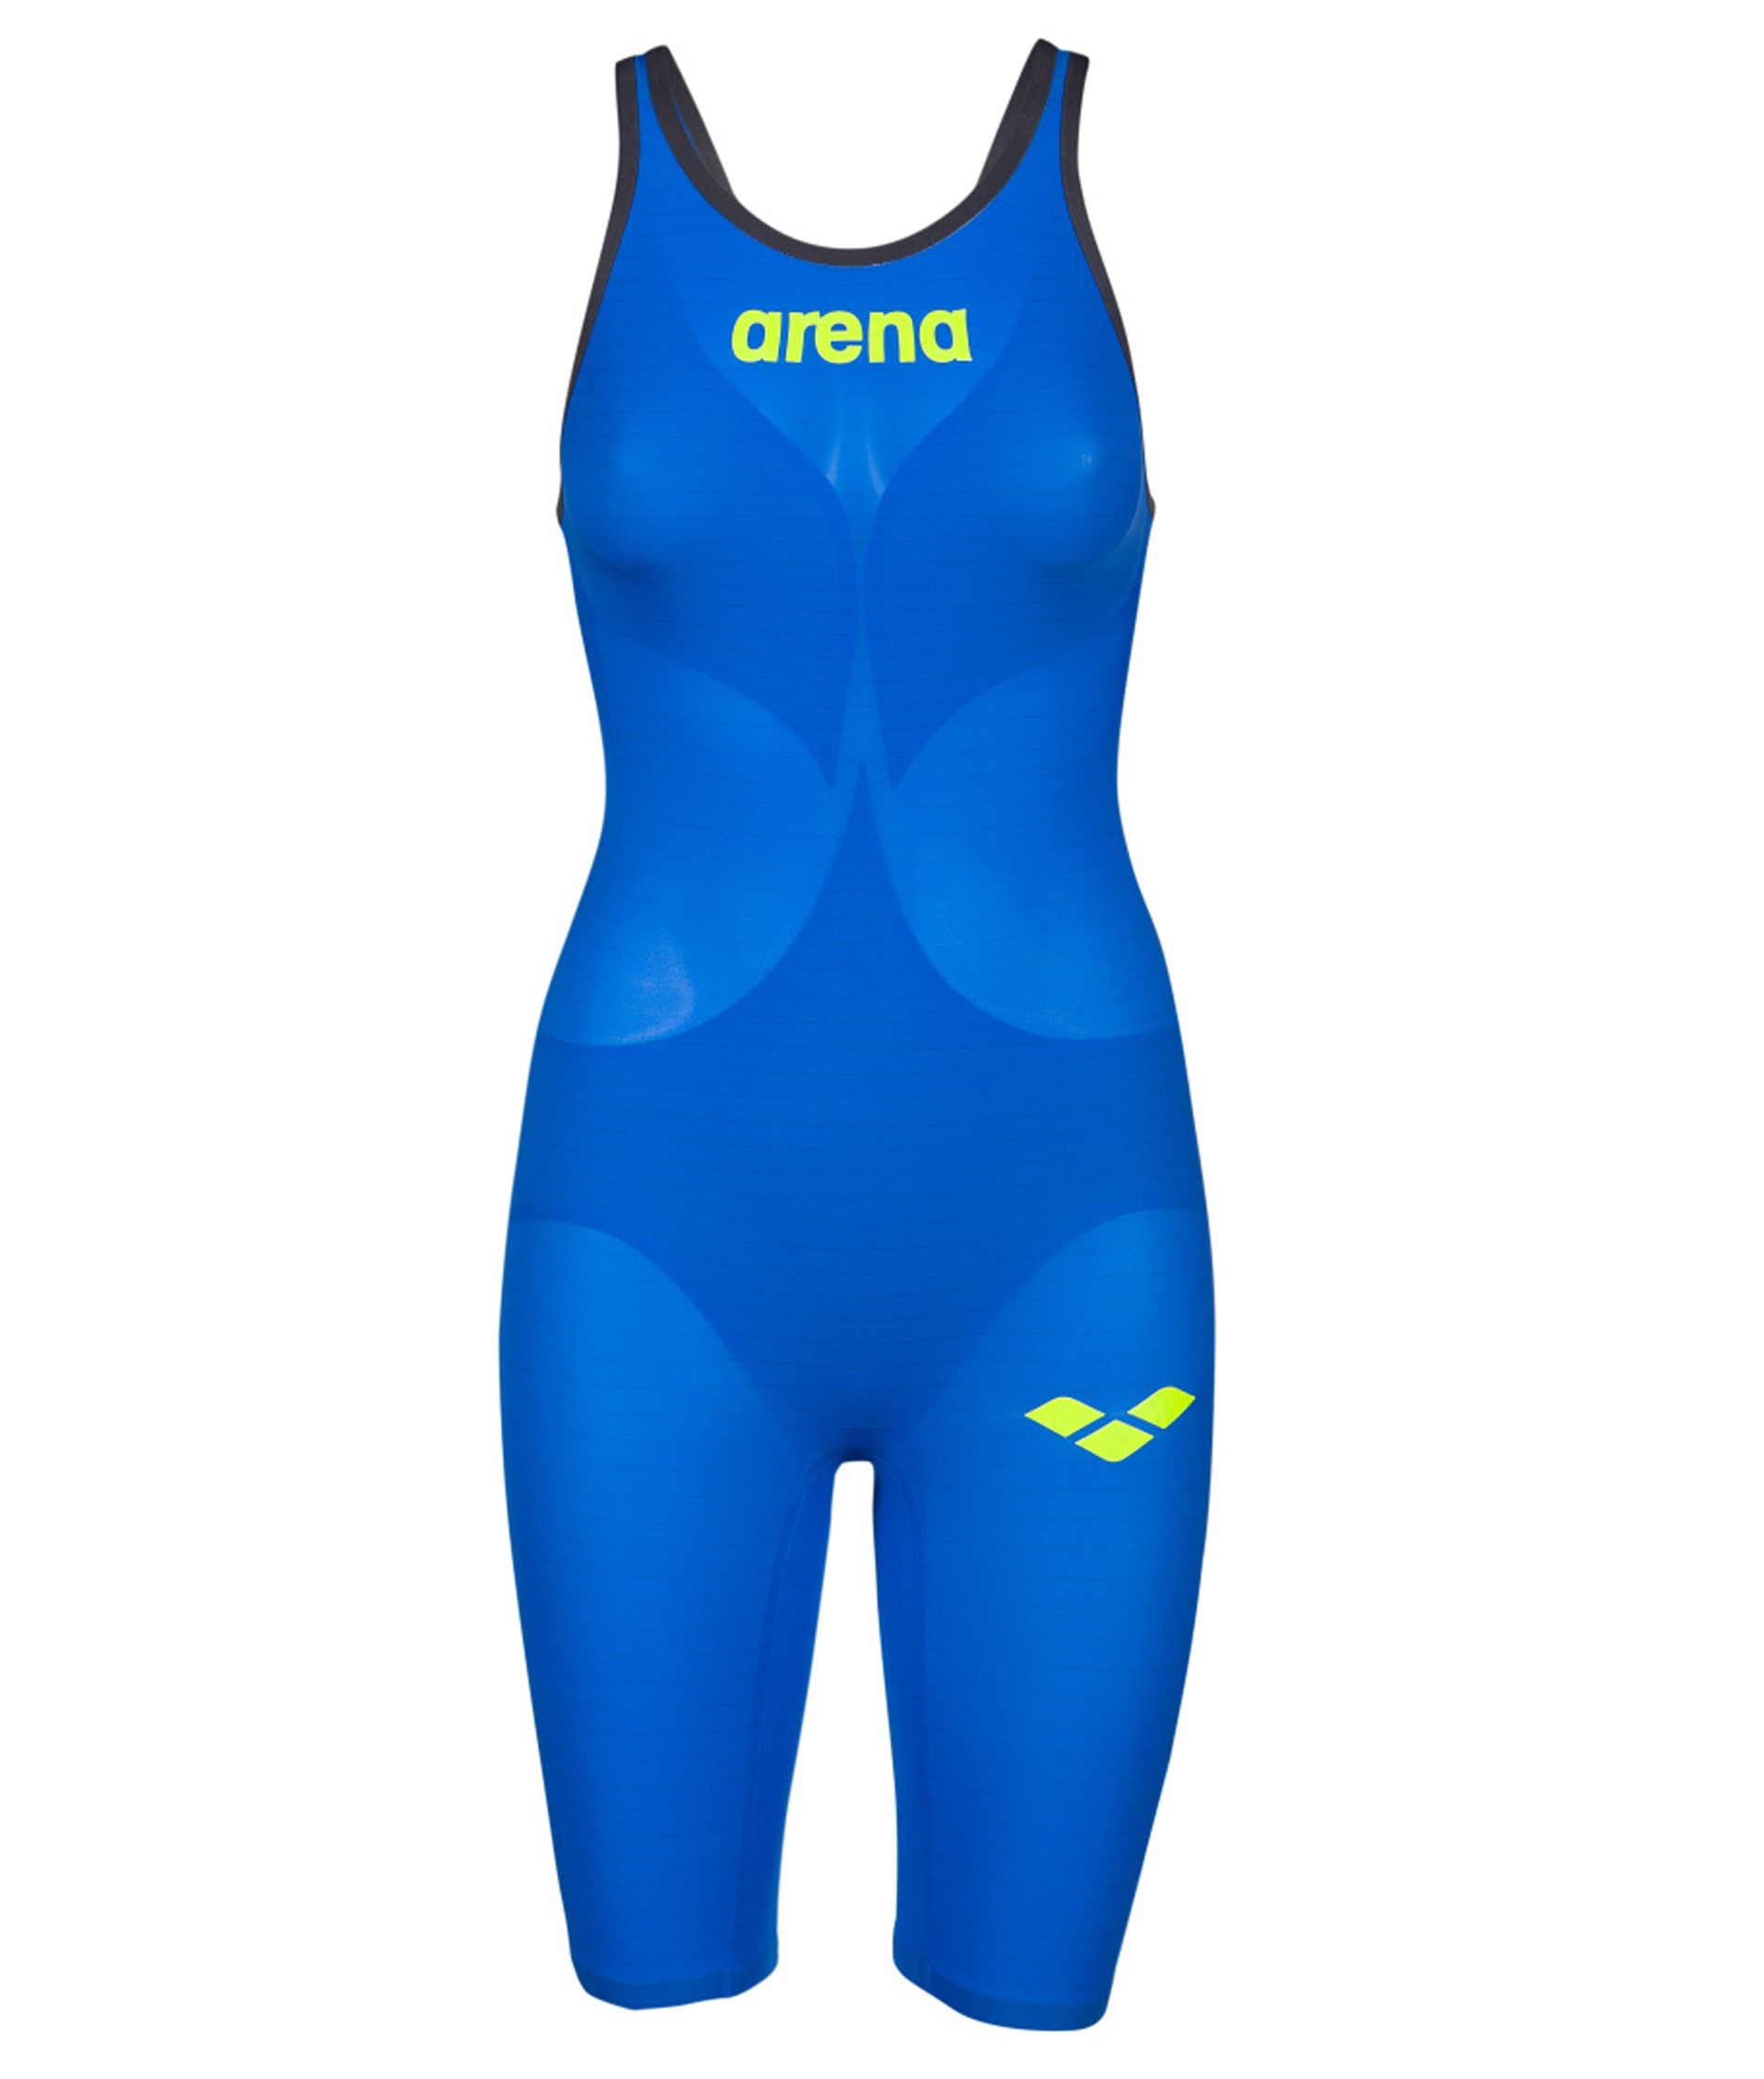 Arena Womens Carbon Air2 Open Back Kneeskin - Blue/Grey/Yellow